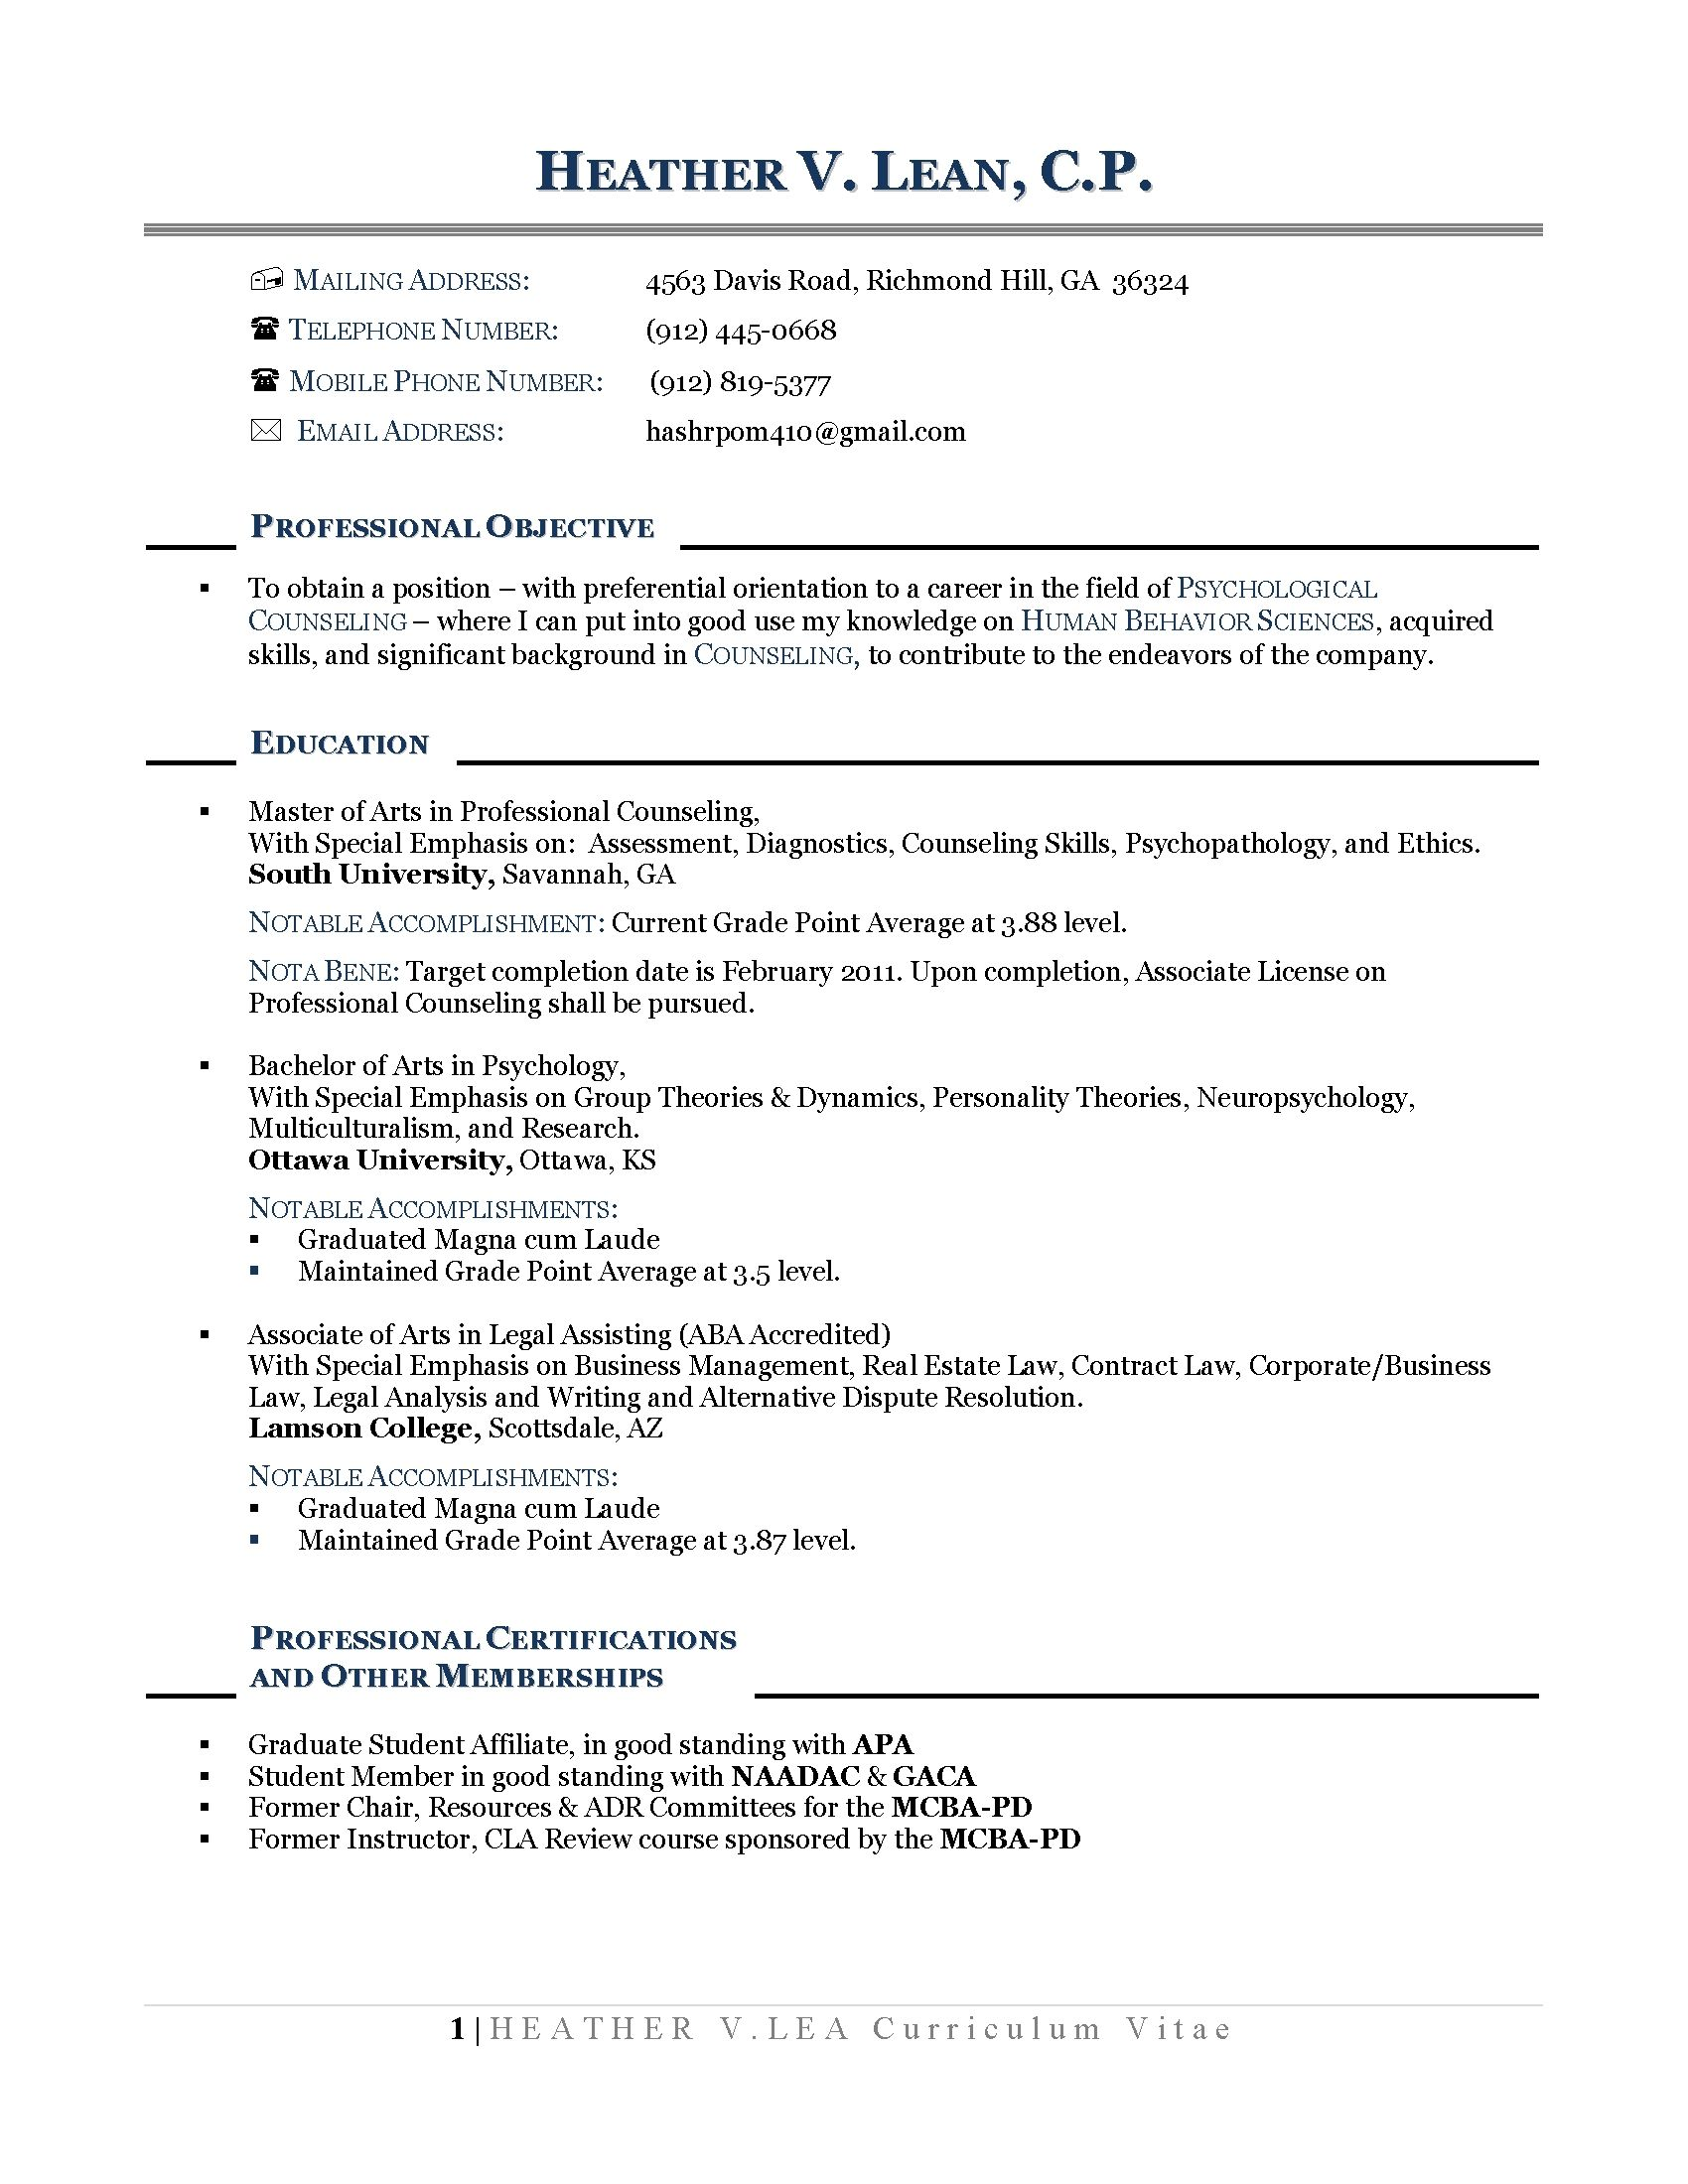 Resume Objective Example Career Change